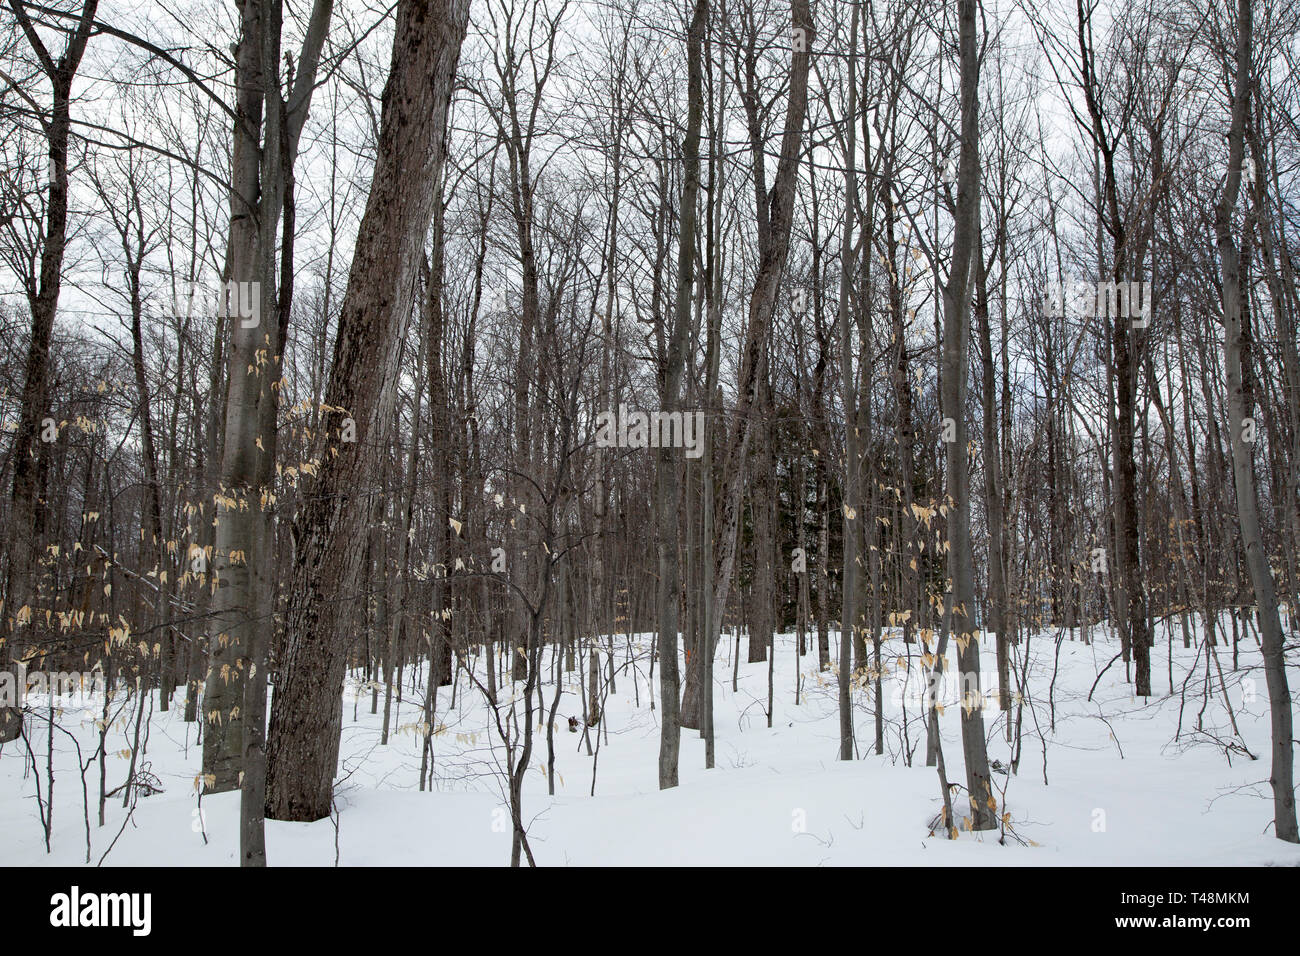 Forest surrounding a country lane in Seguin County, Muskoka, Ontario, in winter with fresh snow on the ground. - Stock Image